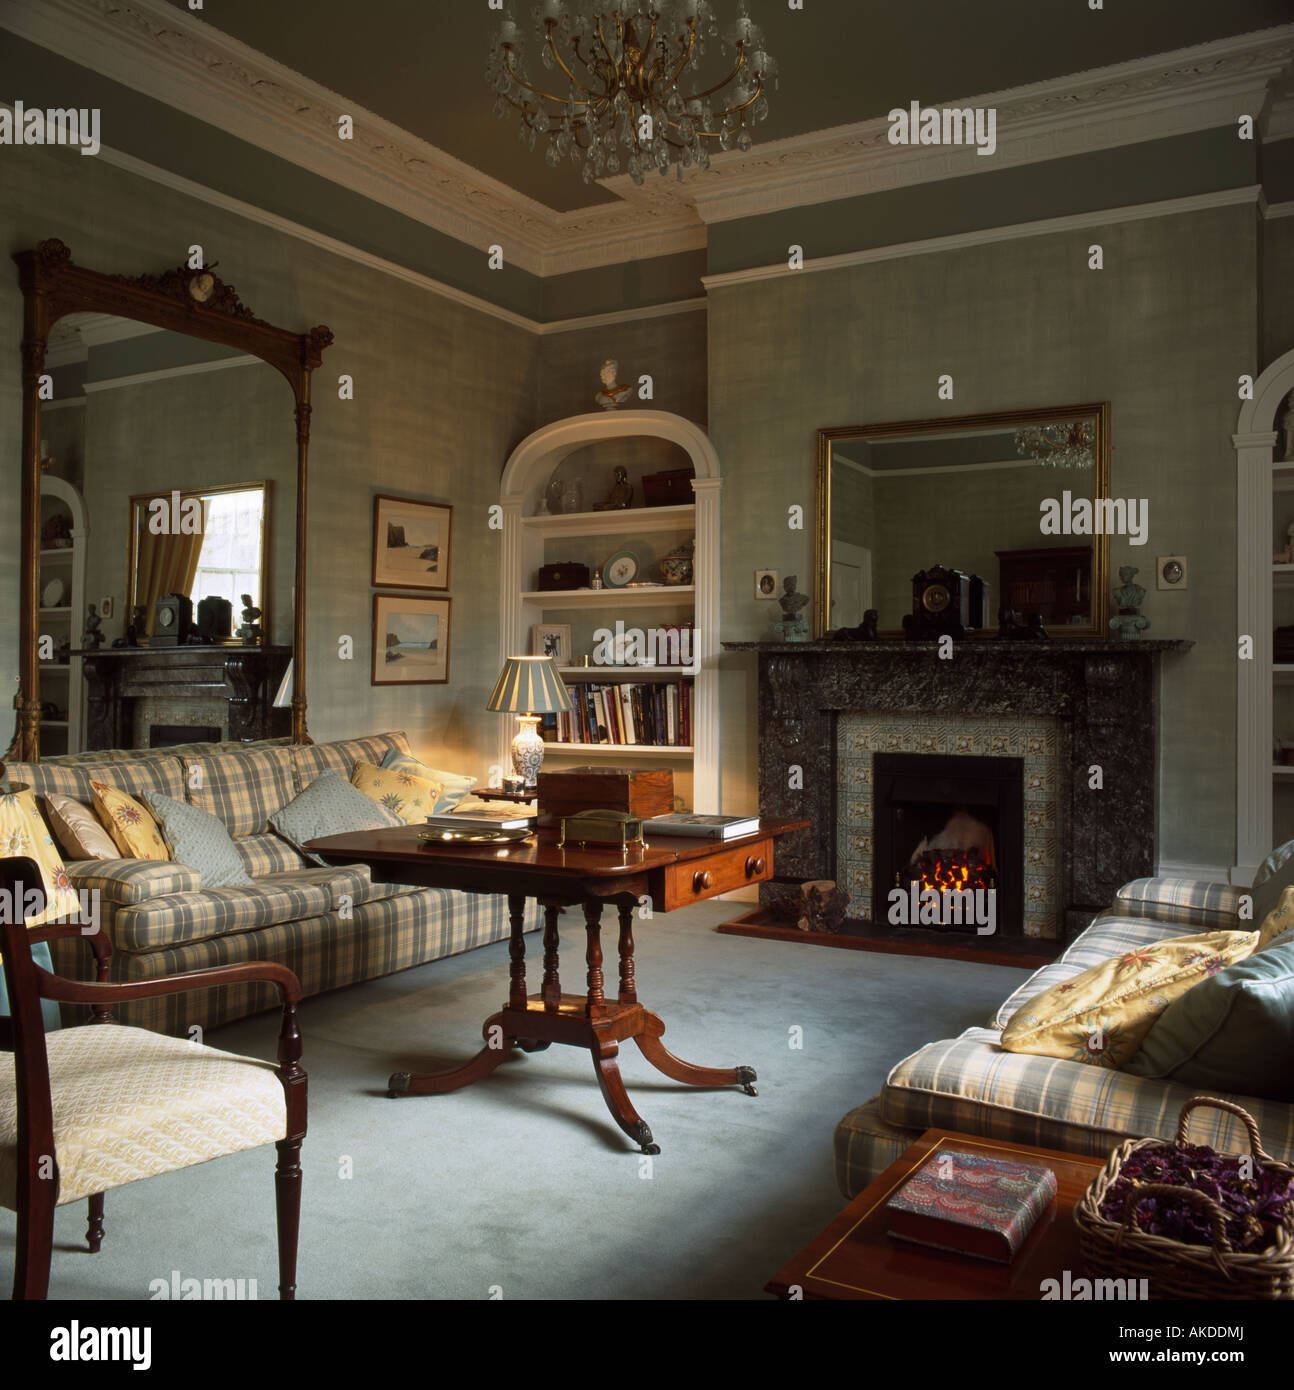 alcove shelving beside the fireplace in grey country drawing room